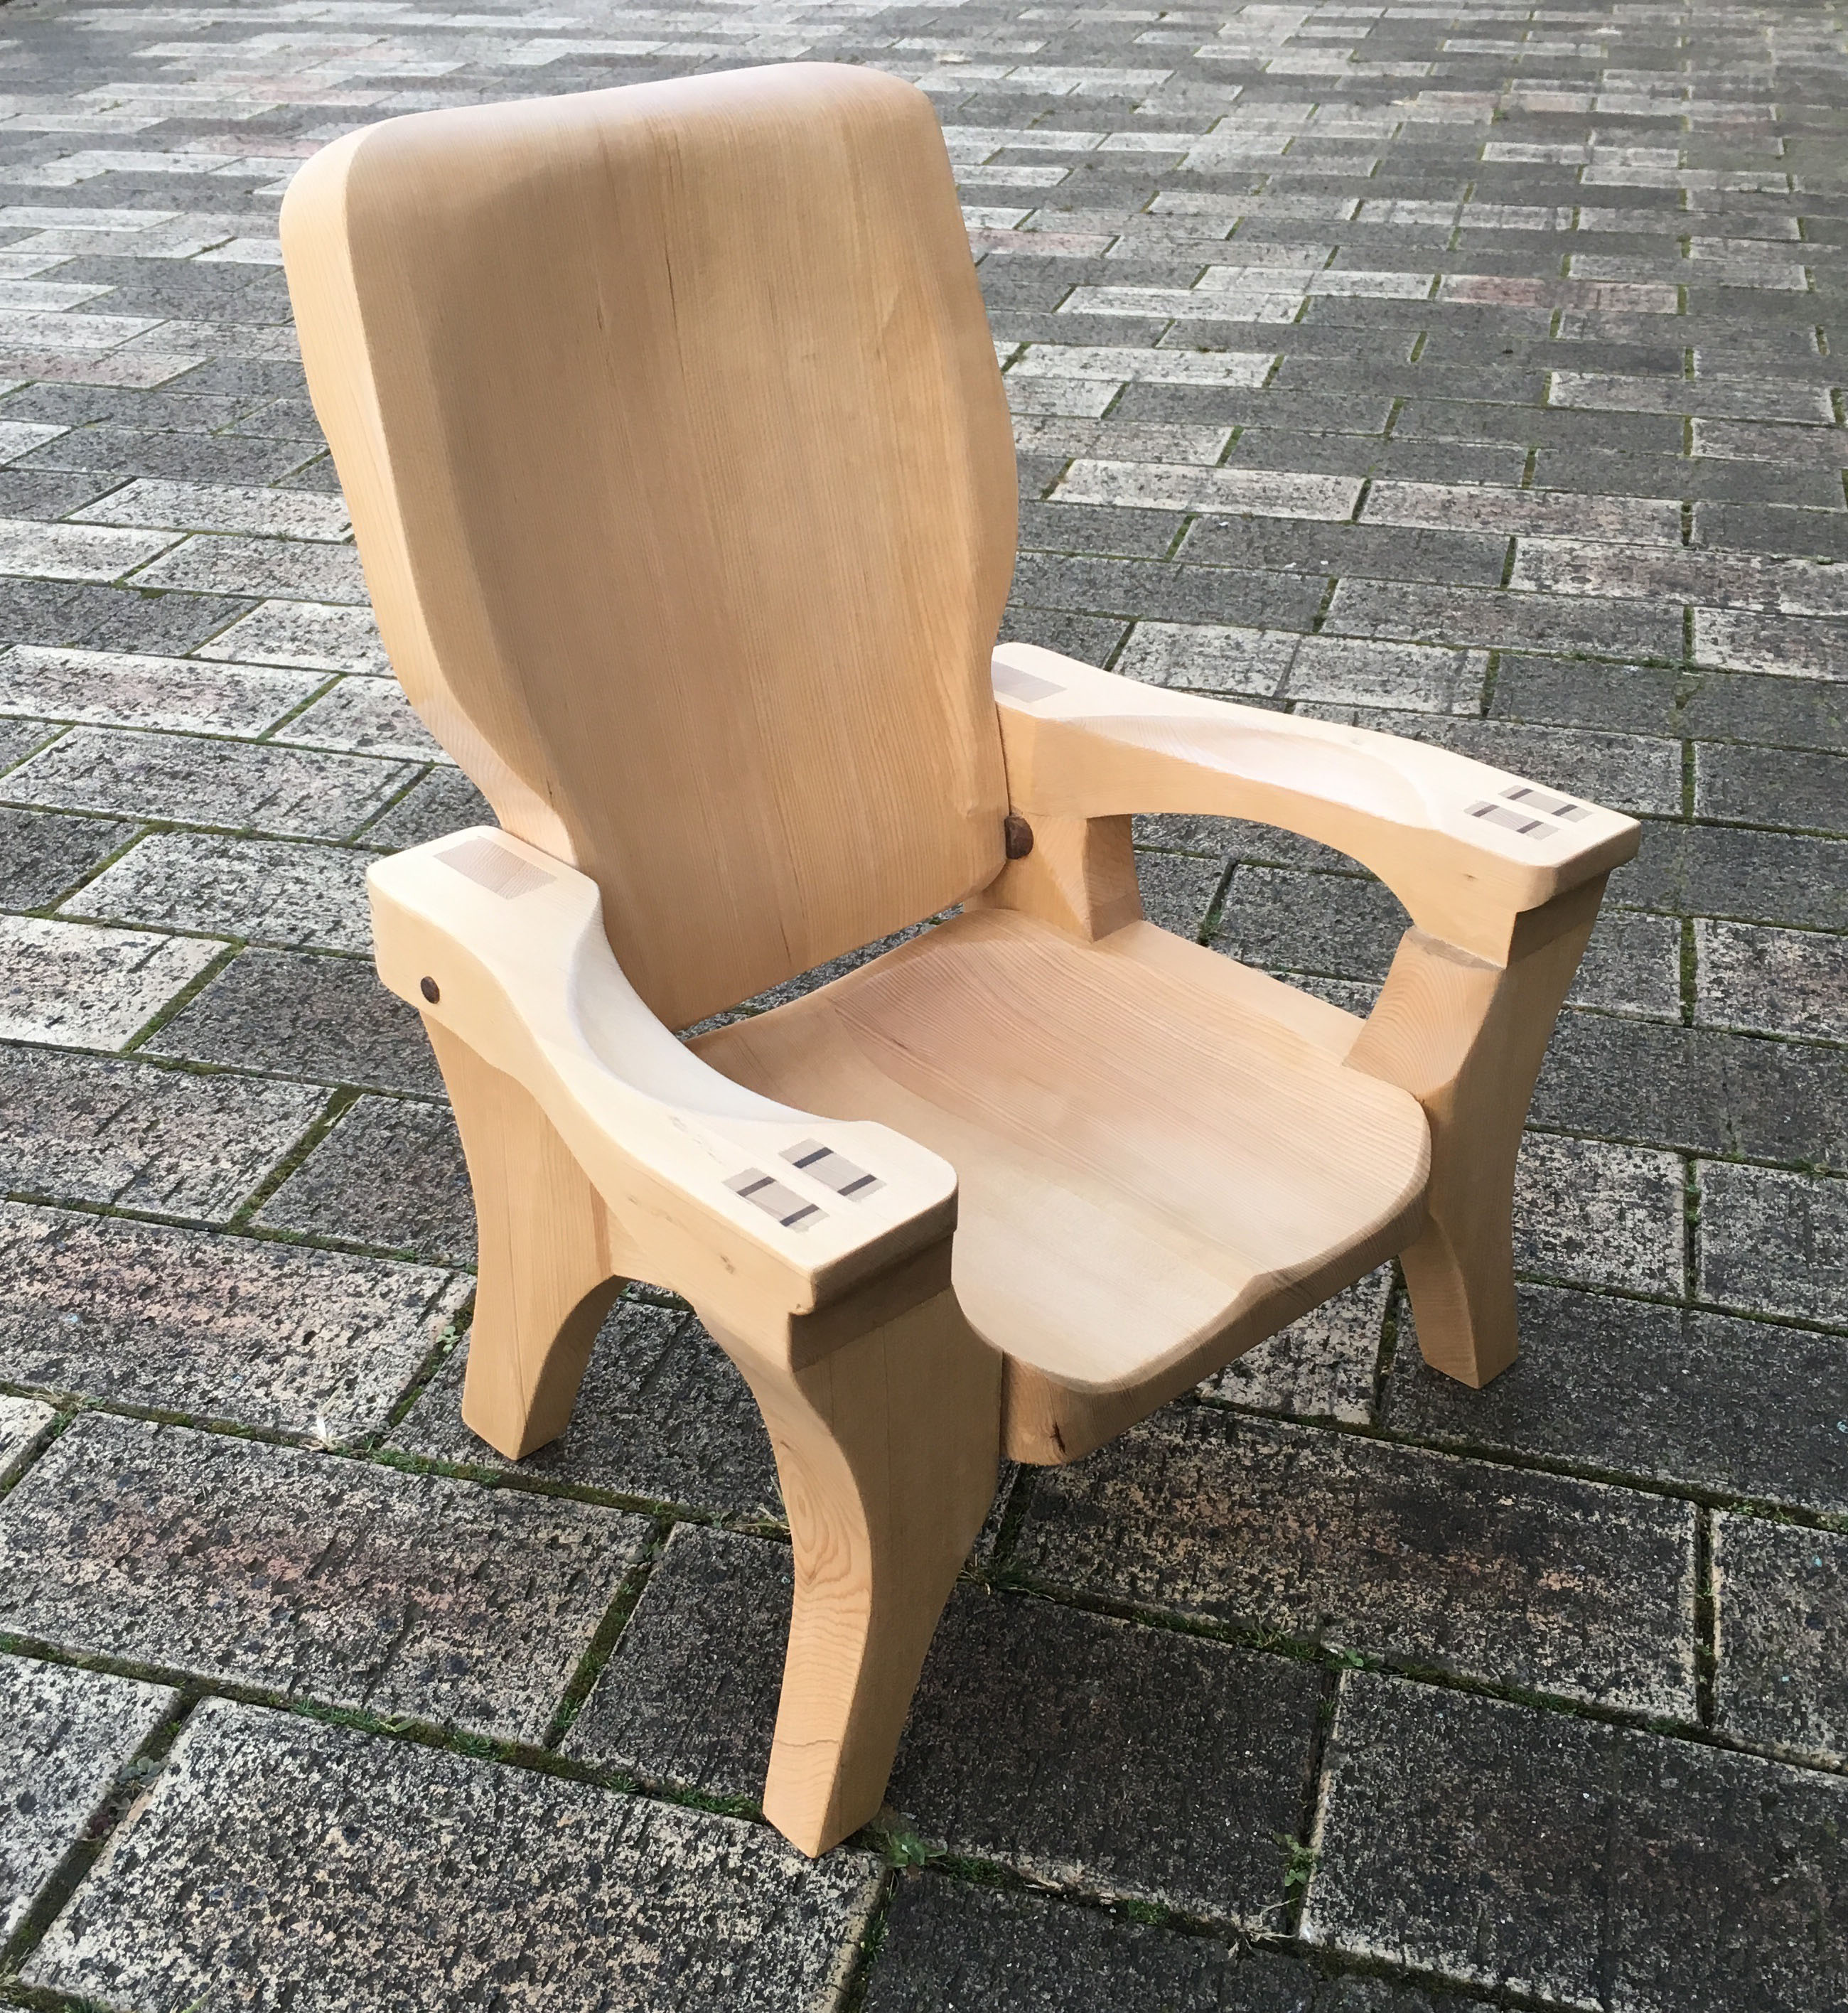 Full scale chair for 1/4 scale client